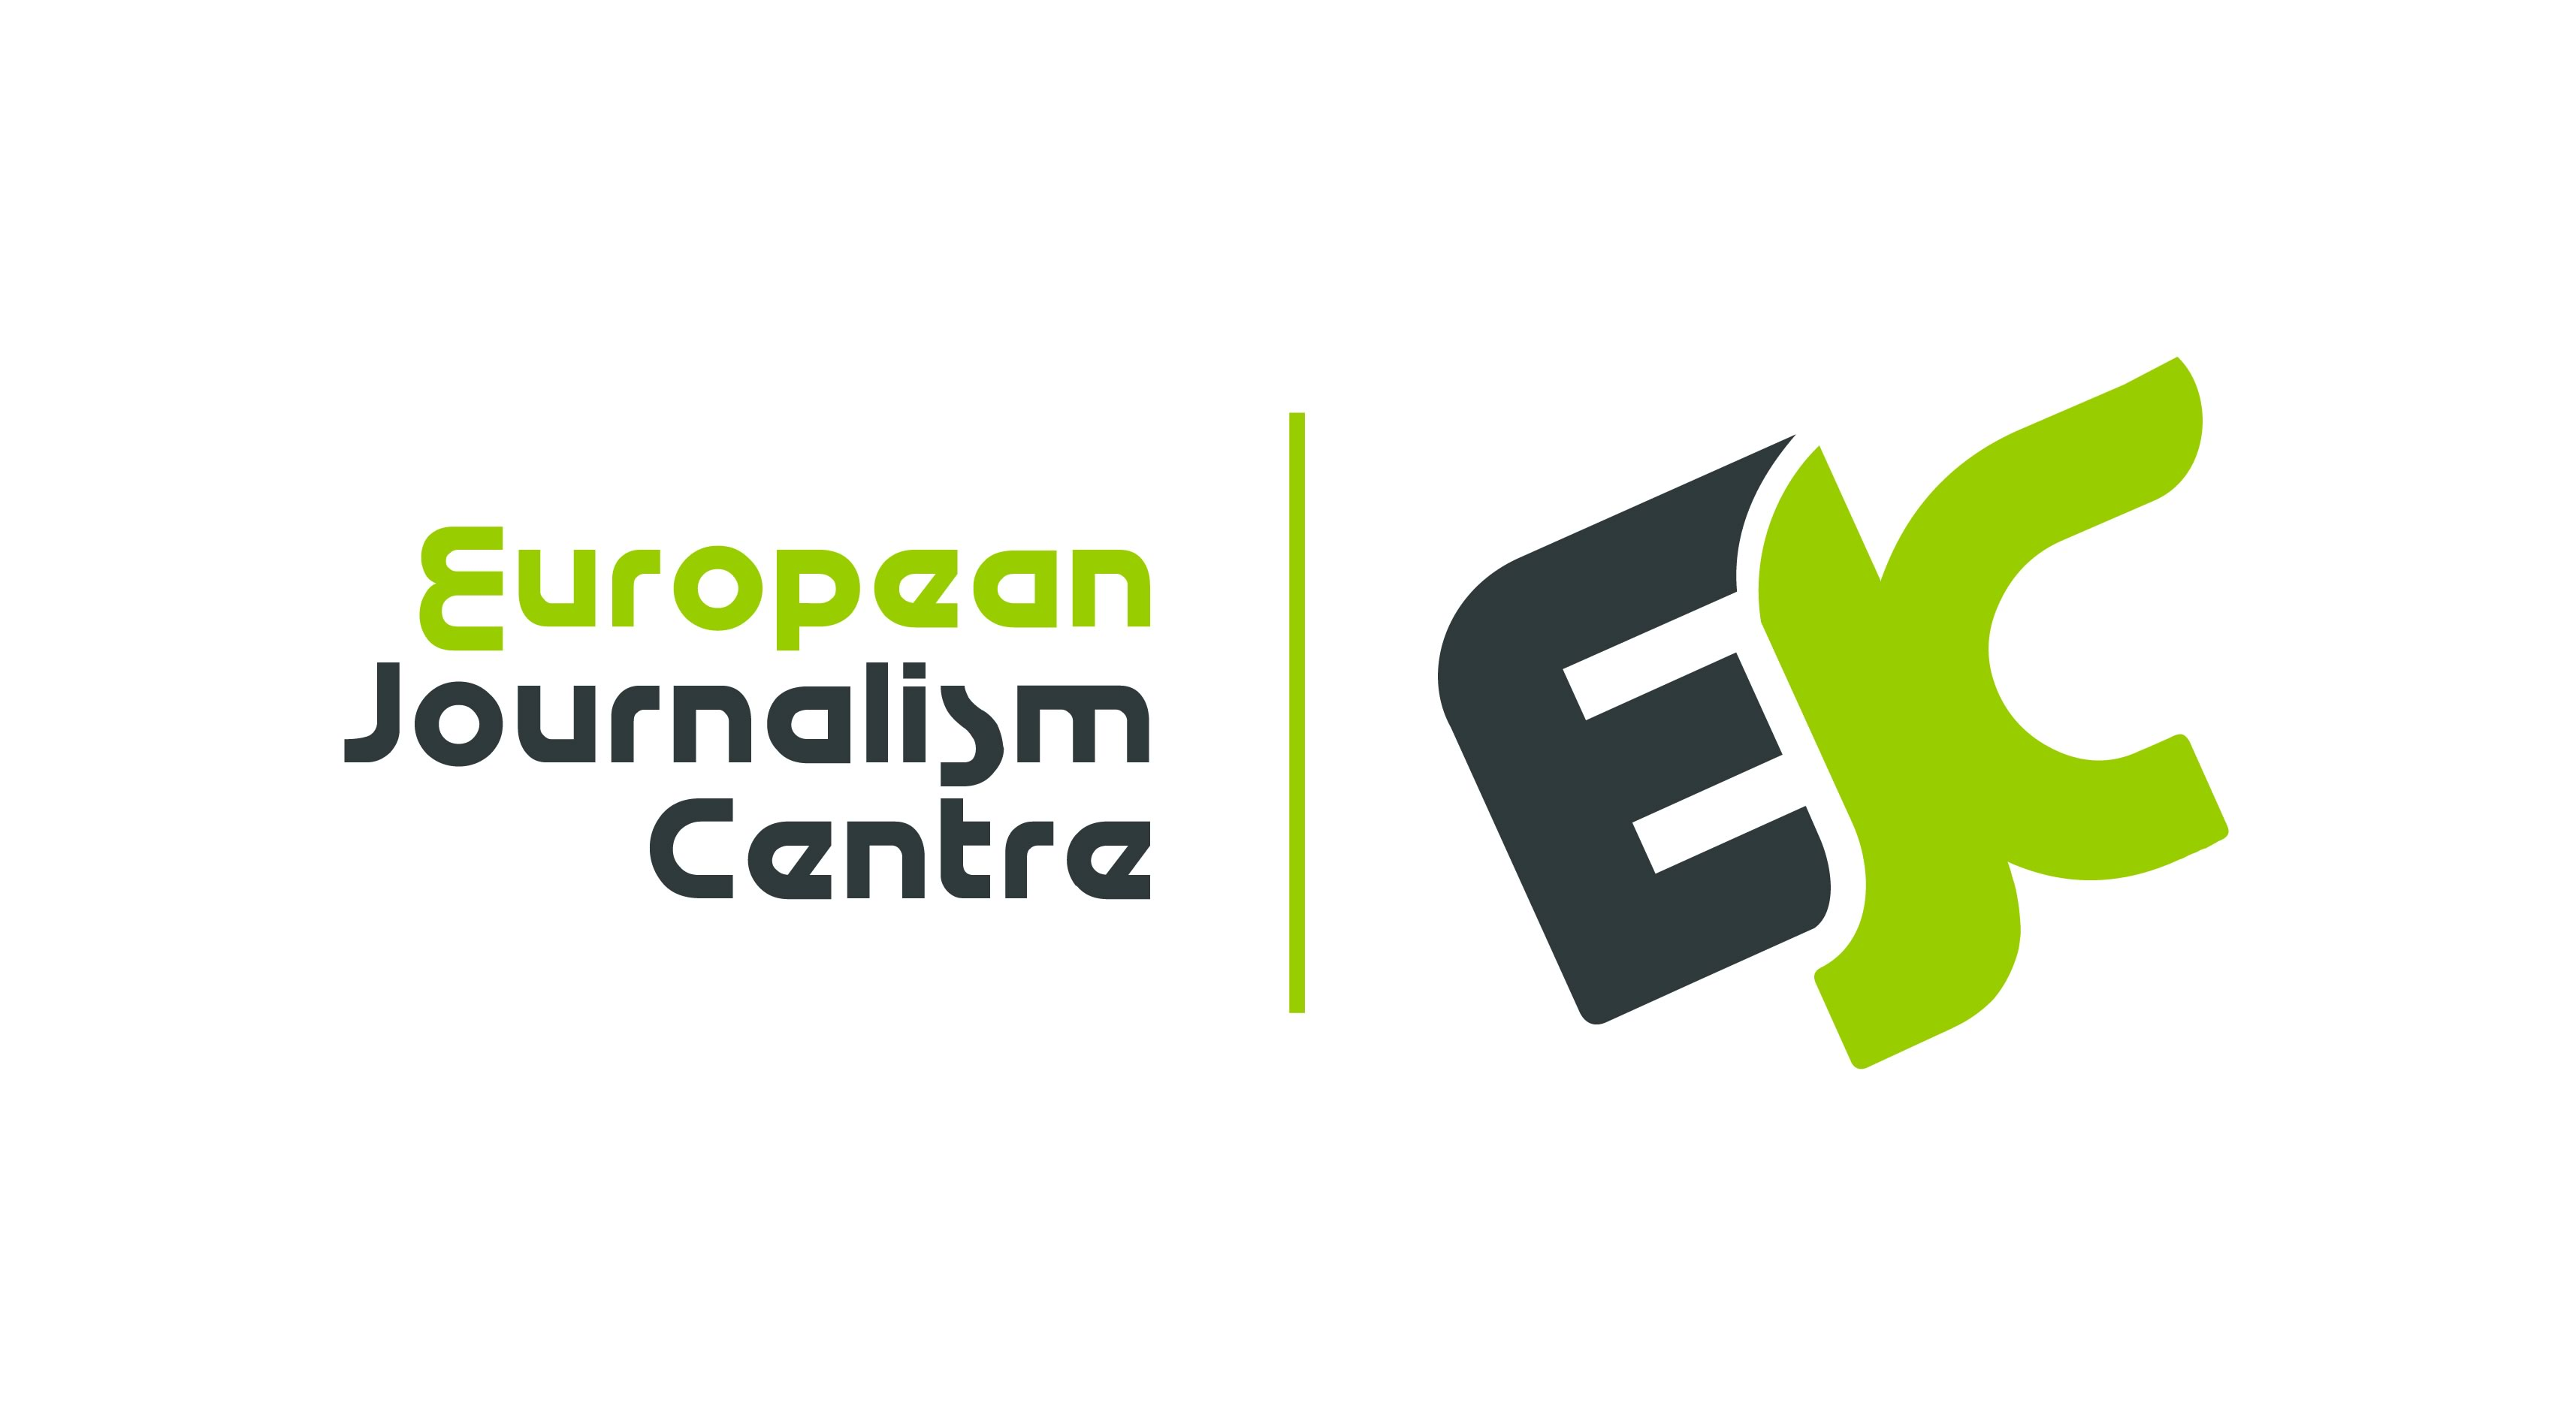 European Journalism Center